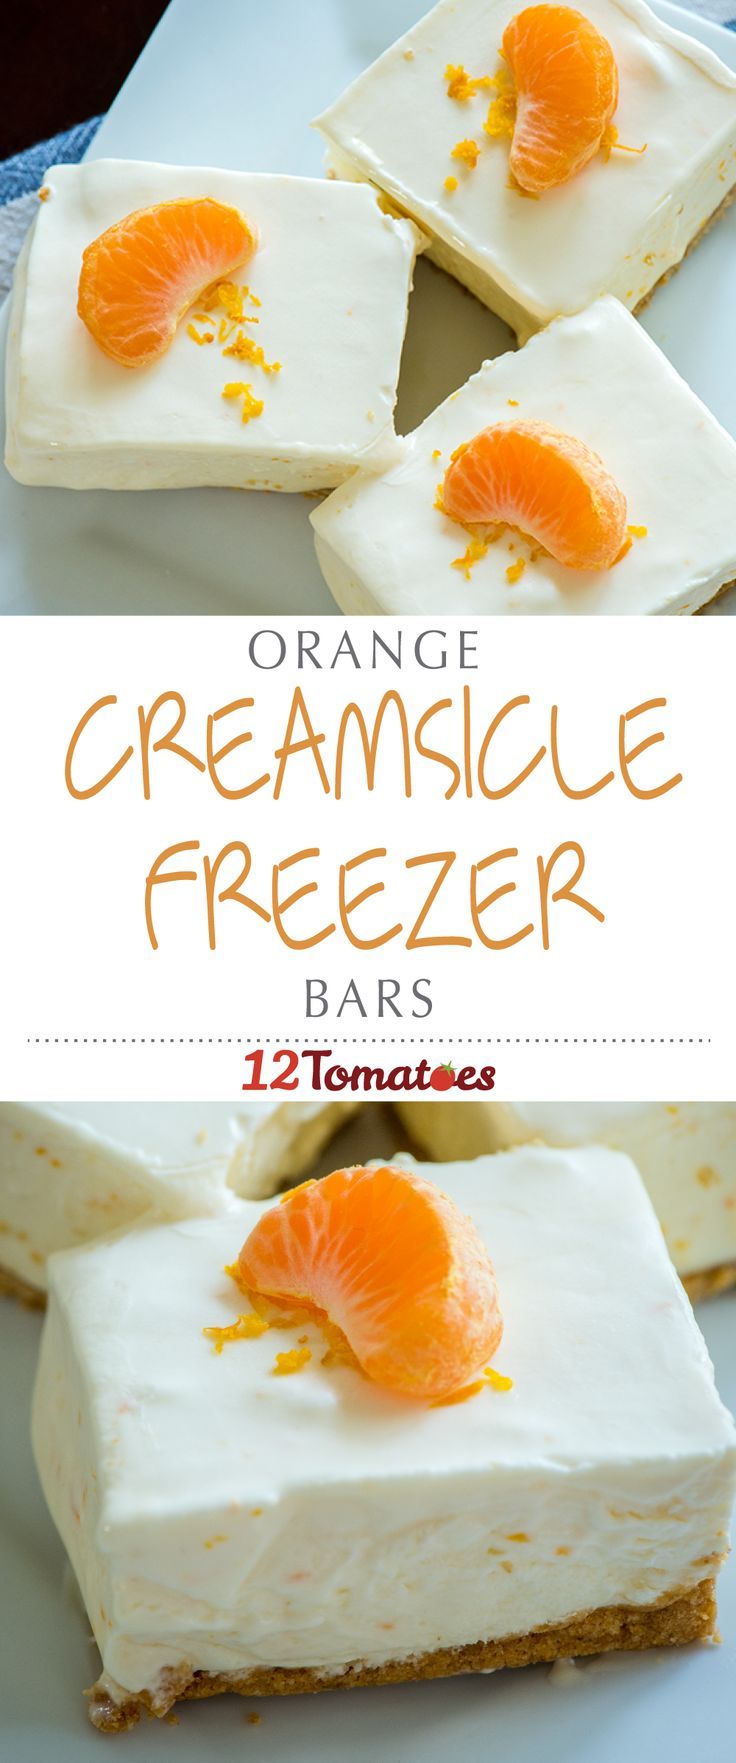 Orange Creamsicle Freezer Bars | Orange creamsicles are a childhood favorite, and we certainly have fond memories of cooling down with them on long summer days. These no-bake creamsicle bars are the grownup version of the classic ice cream treat – a little more elegant, but still bursting with bright flavor and cool, creamy texture.